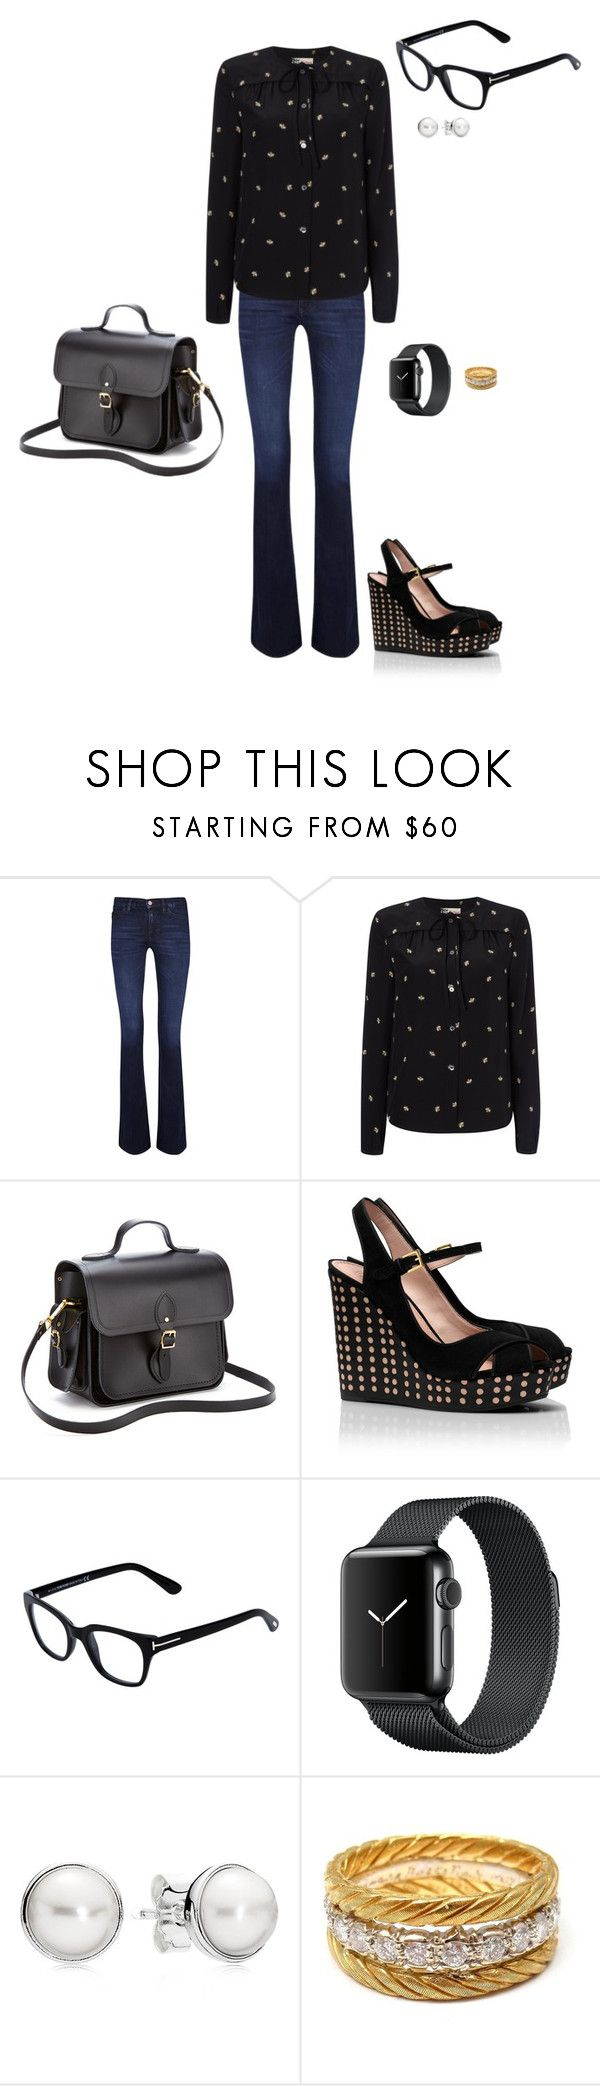 """""""Sem título #2149"""" by analuli on Polyvore featuring moda, M.i.h Jeans, Boutique by Jaeger, The Cambridge Satchel Company, Tory Burch, Tom Ford, Pandora e Buccellati"""